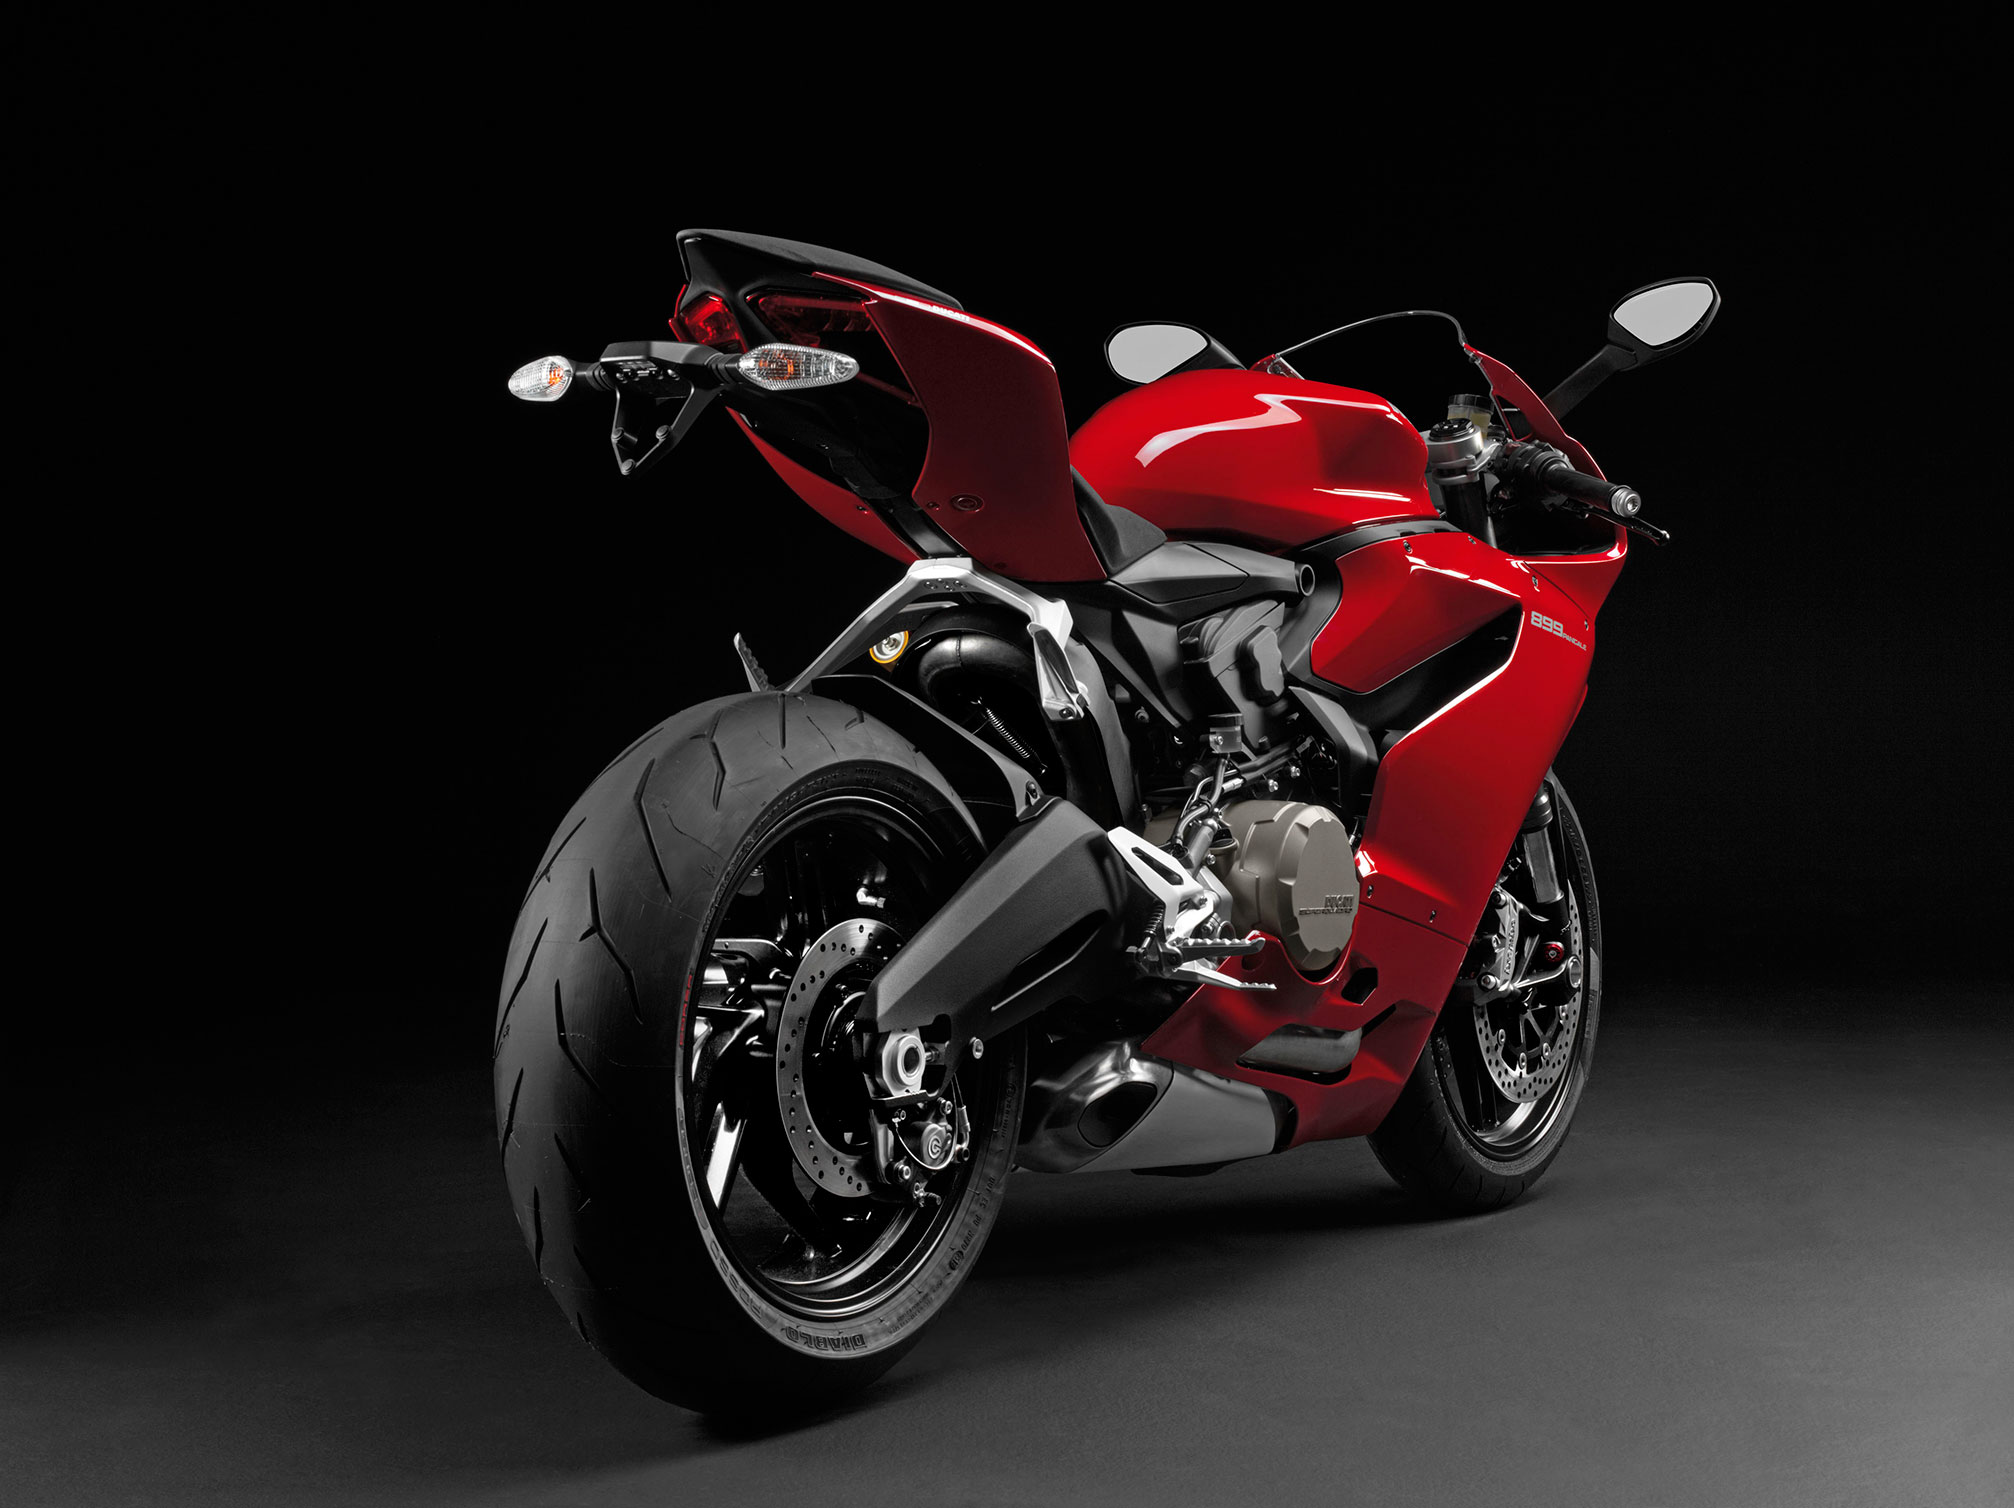 2014 ducati superbike 899 panigale g wallpaper | 2014x1508 | 150896